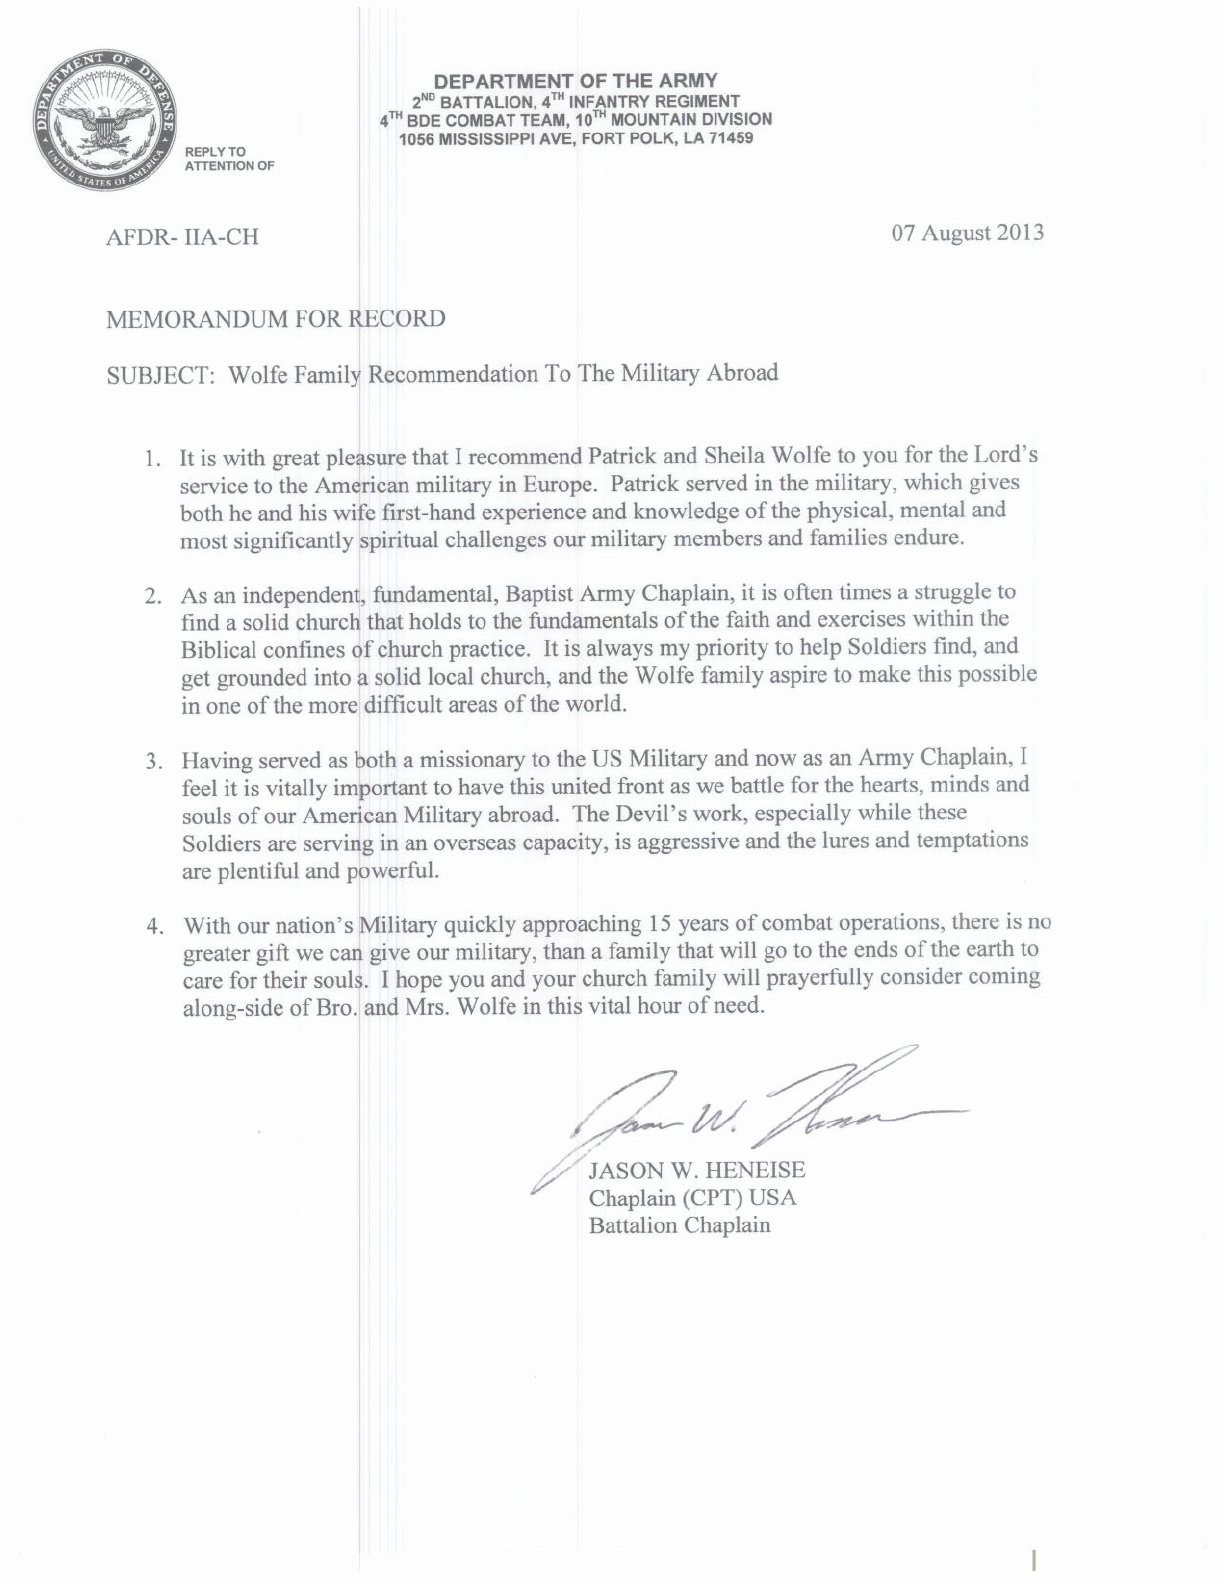 Military Letter Of Recommendation Template Inspirational Best S Of Army Ficer Letter Re Mendation Air